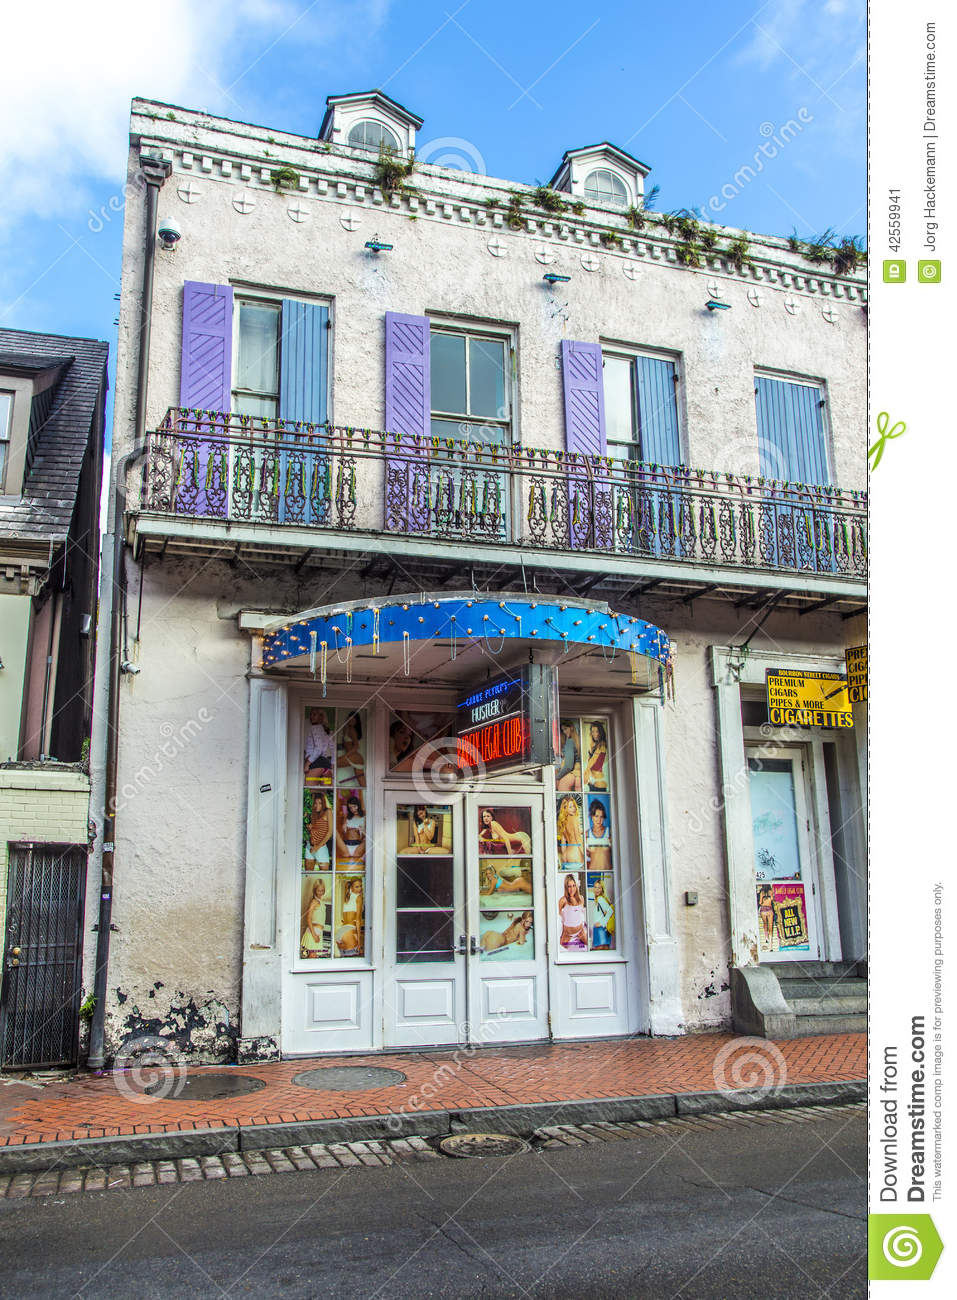 in stores Gay new orleans video